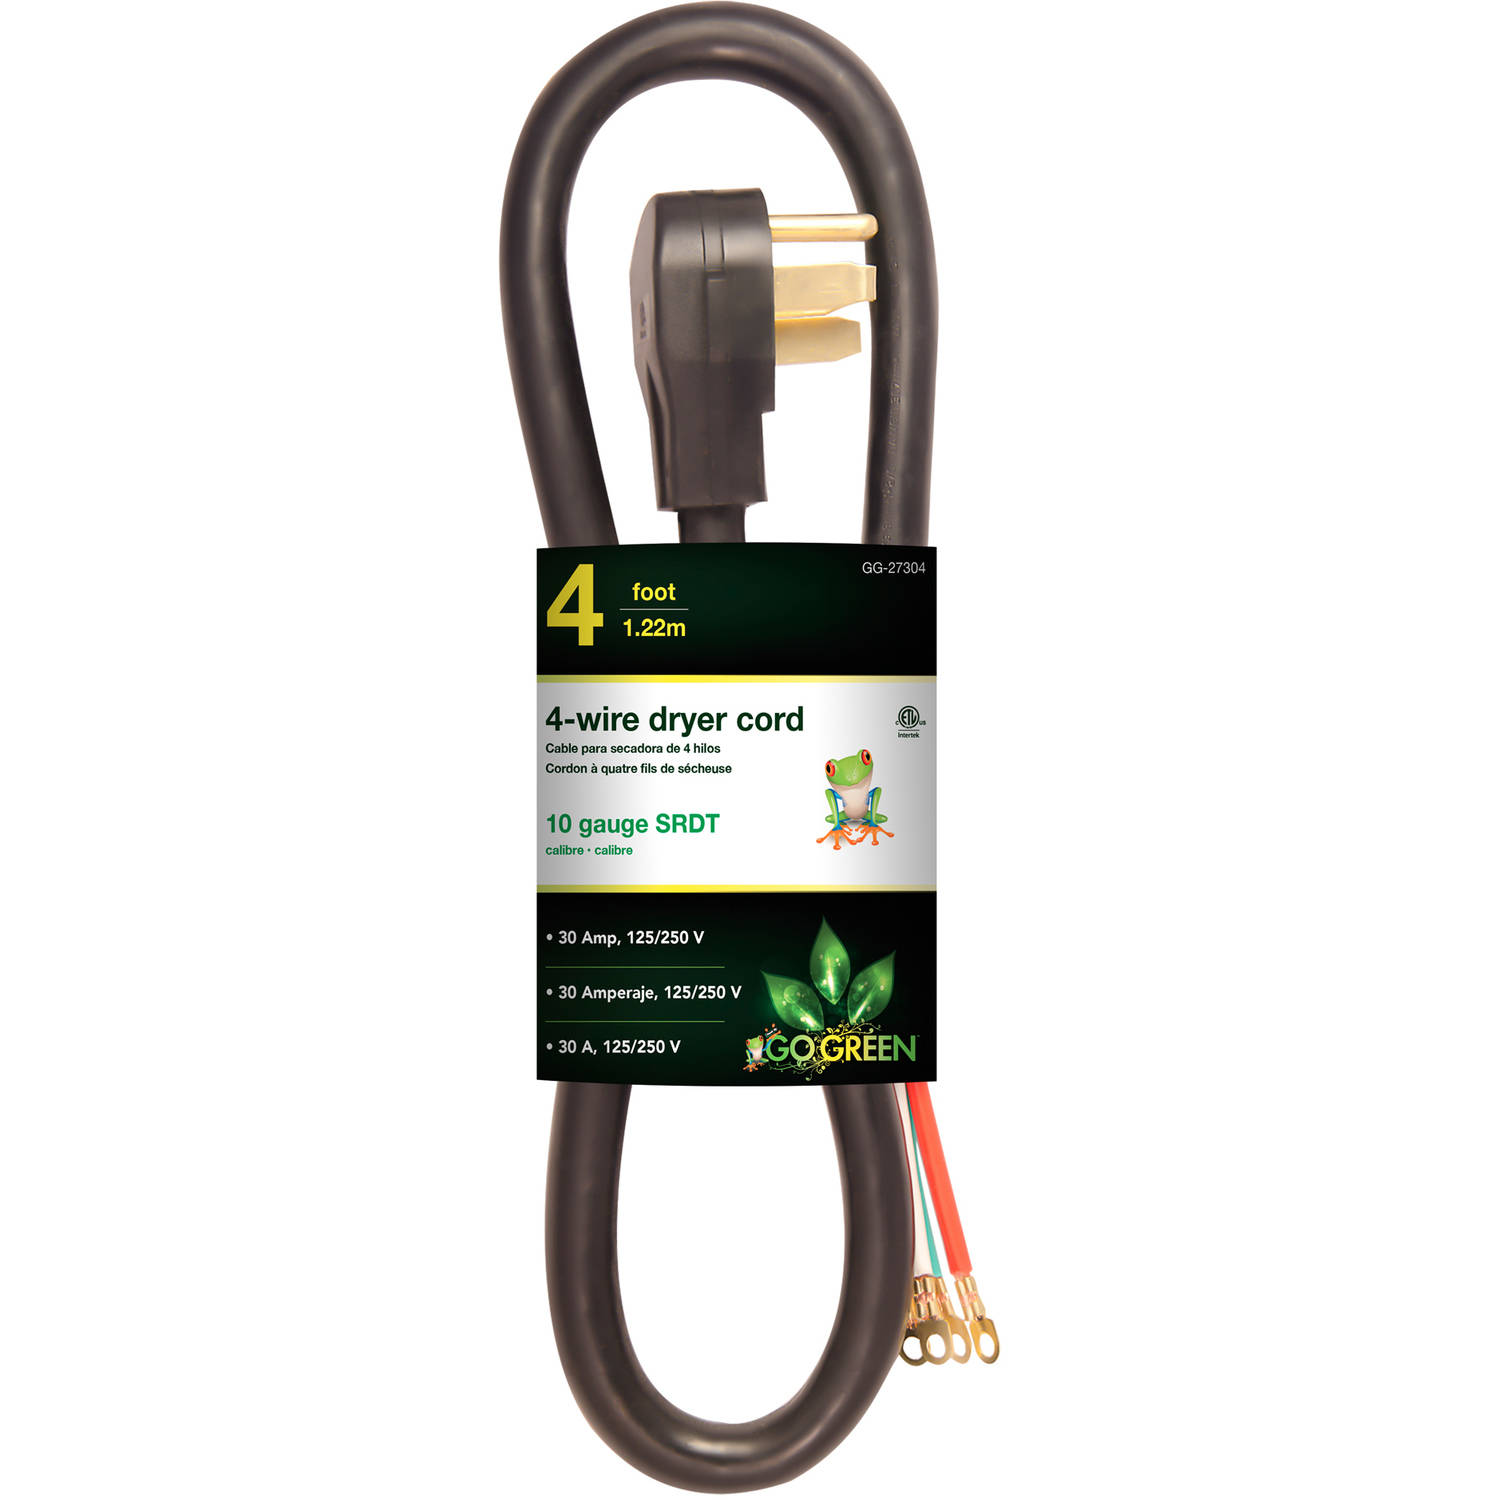 GoGreen Power 4' 4-Wire Dryer Cord, Black, 27304